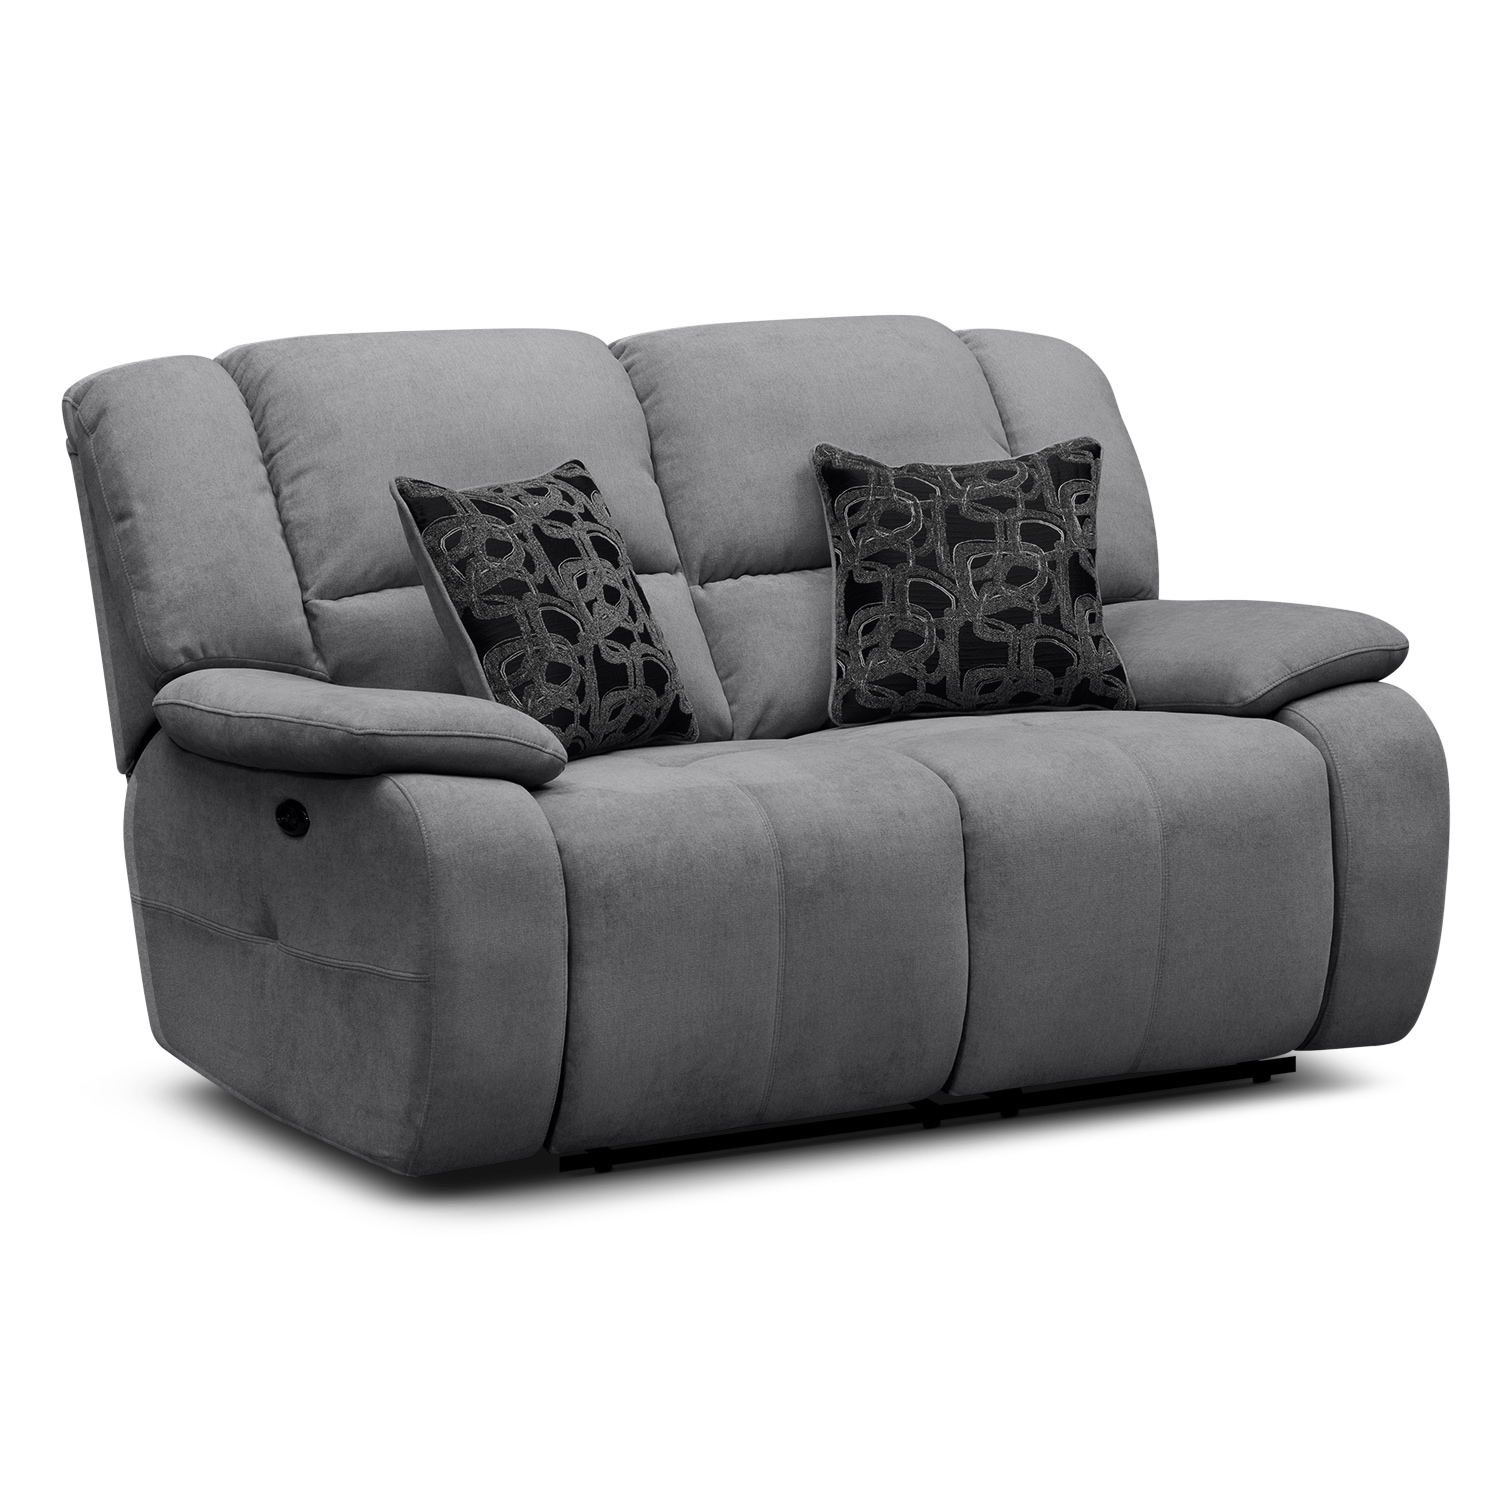 Destin Gray Power Reclining Loveseat